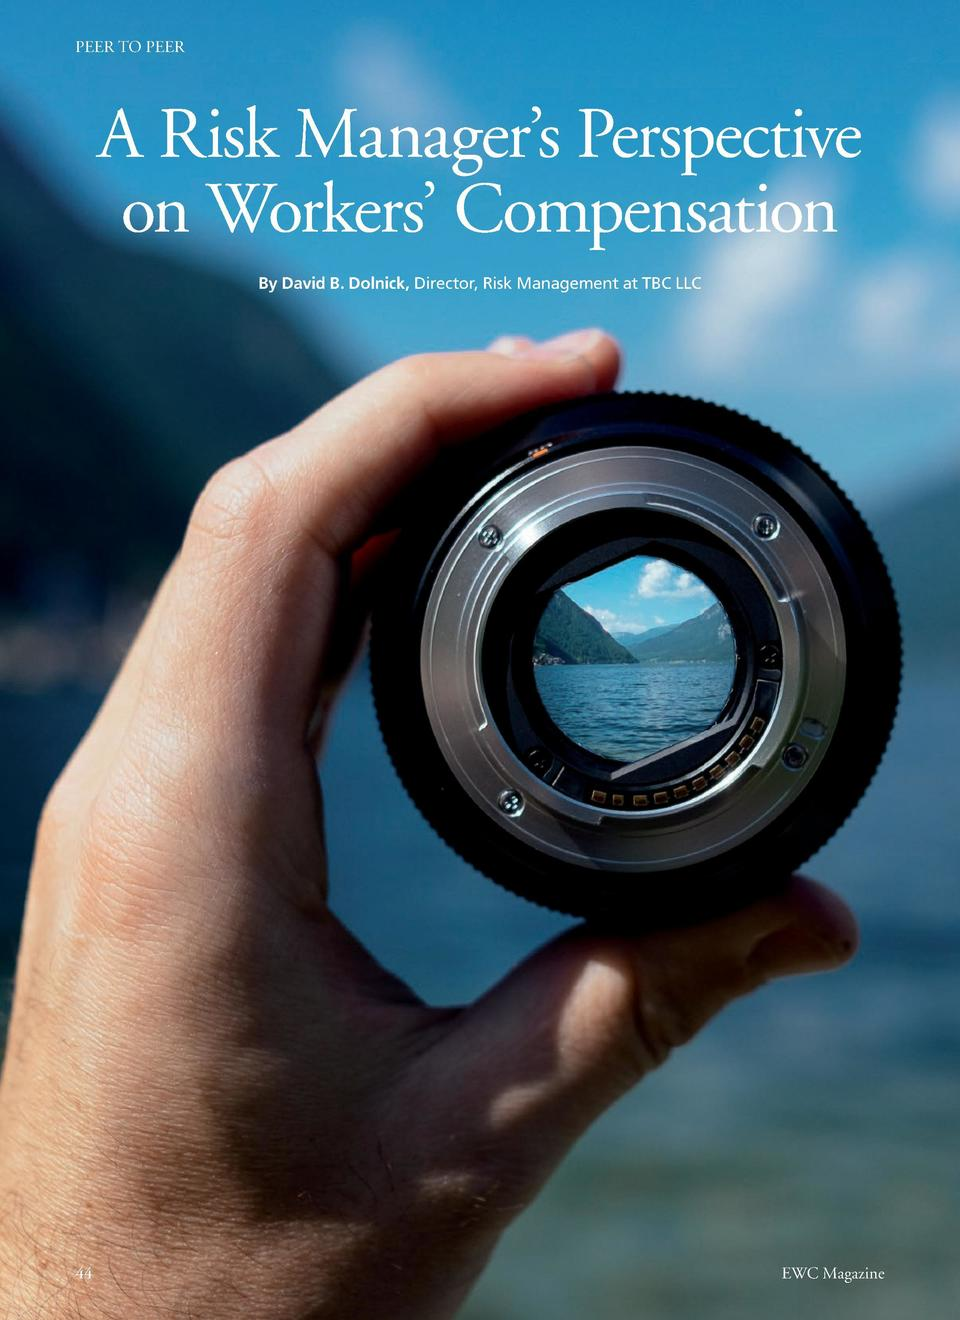 PEER TO PEER  PEER TO PEER  A Risk Manager   s Perspective on Workers    Compensation By David B. Dolnick, Director, Risk ...